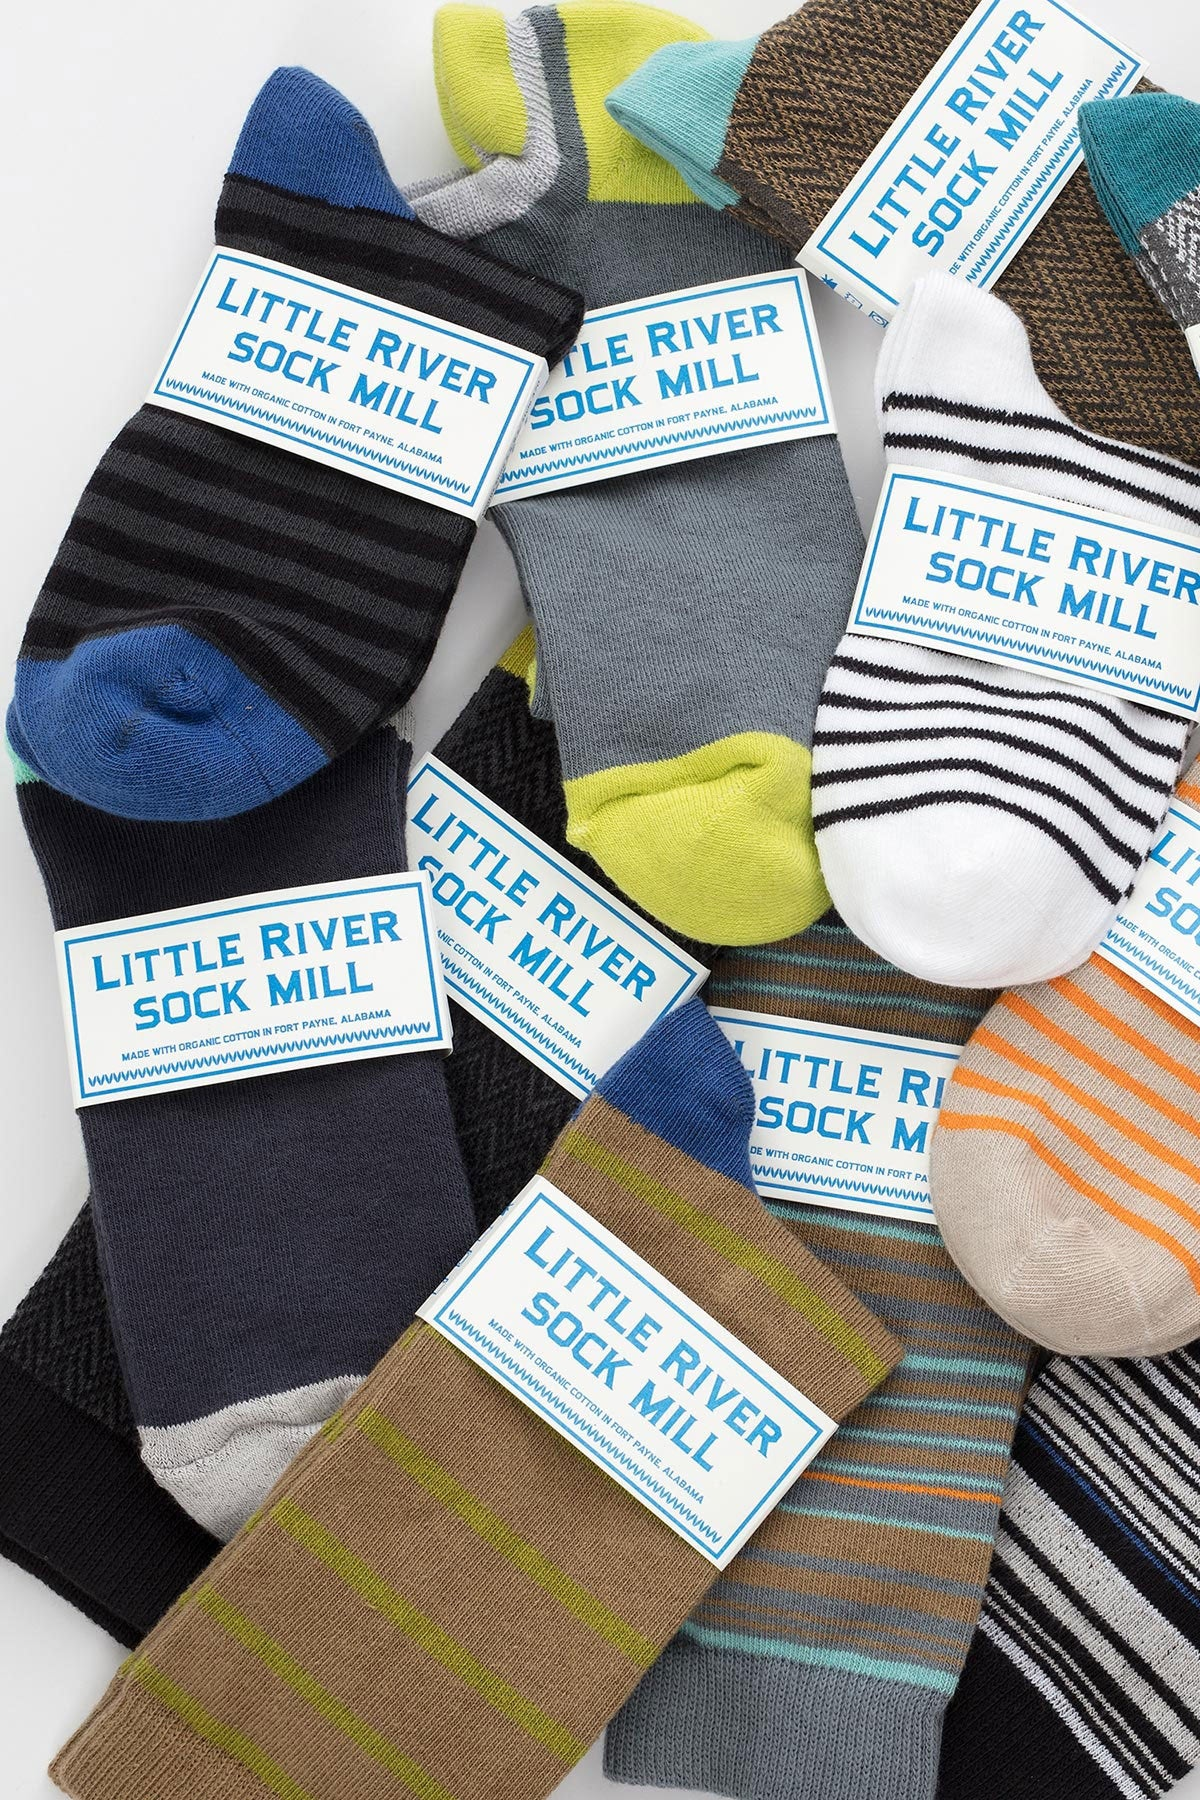 STRIPED SHORT CREW SOCK BY LITTLE RIVER SOCK MILL